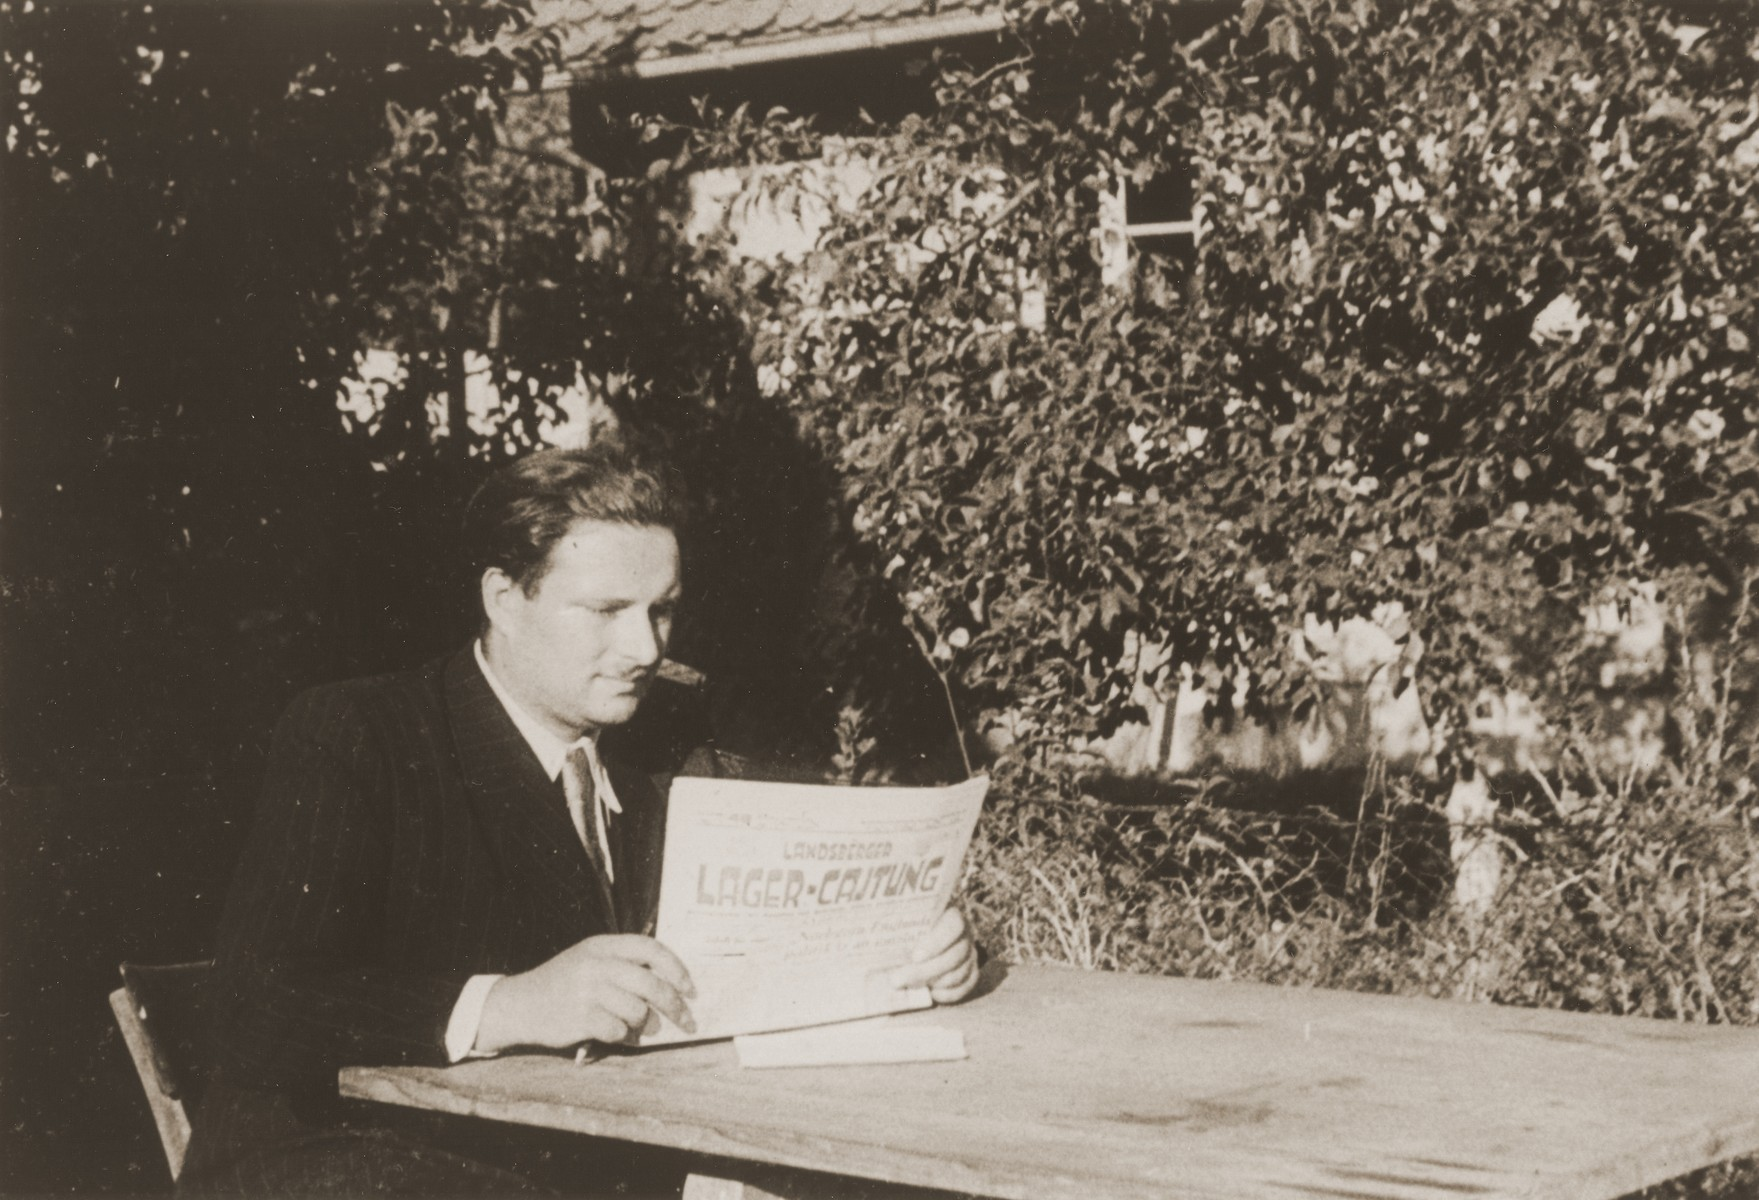 Photojournalist Izik Sutin reads the Landsberger Lager-Cajtung, a newspaper to which he was a frequent contributor.